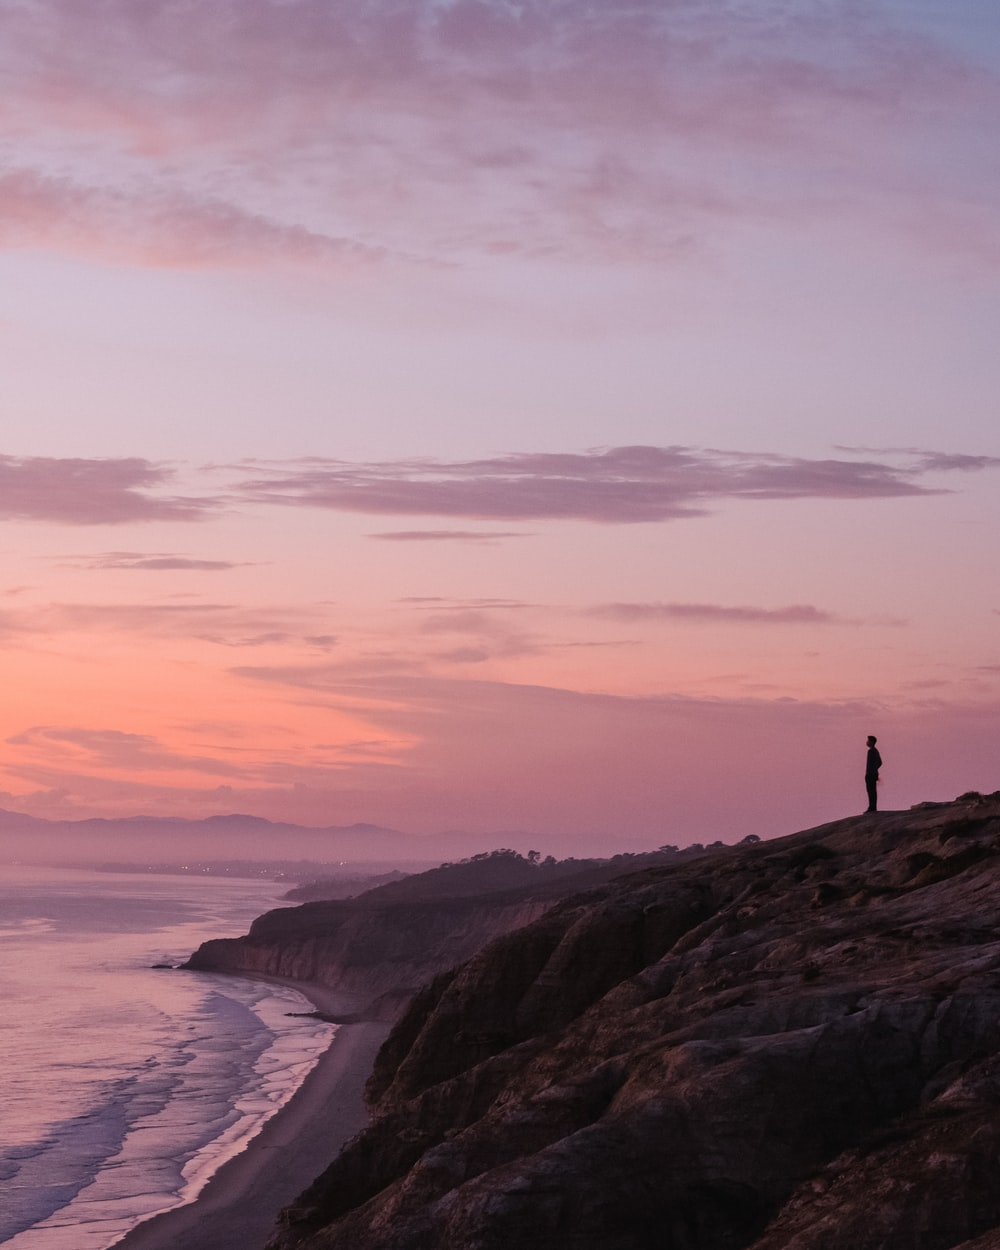 silhouette of person standing on rock formation near body of water during sunset